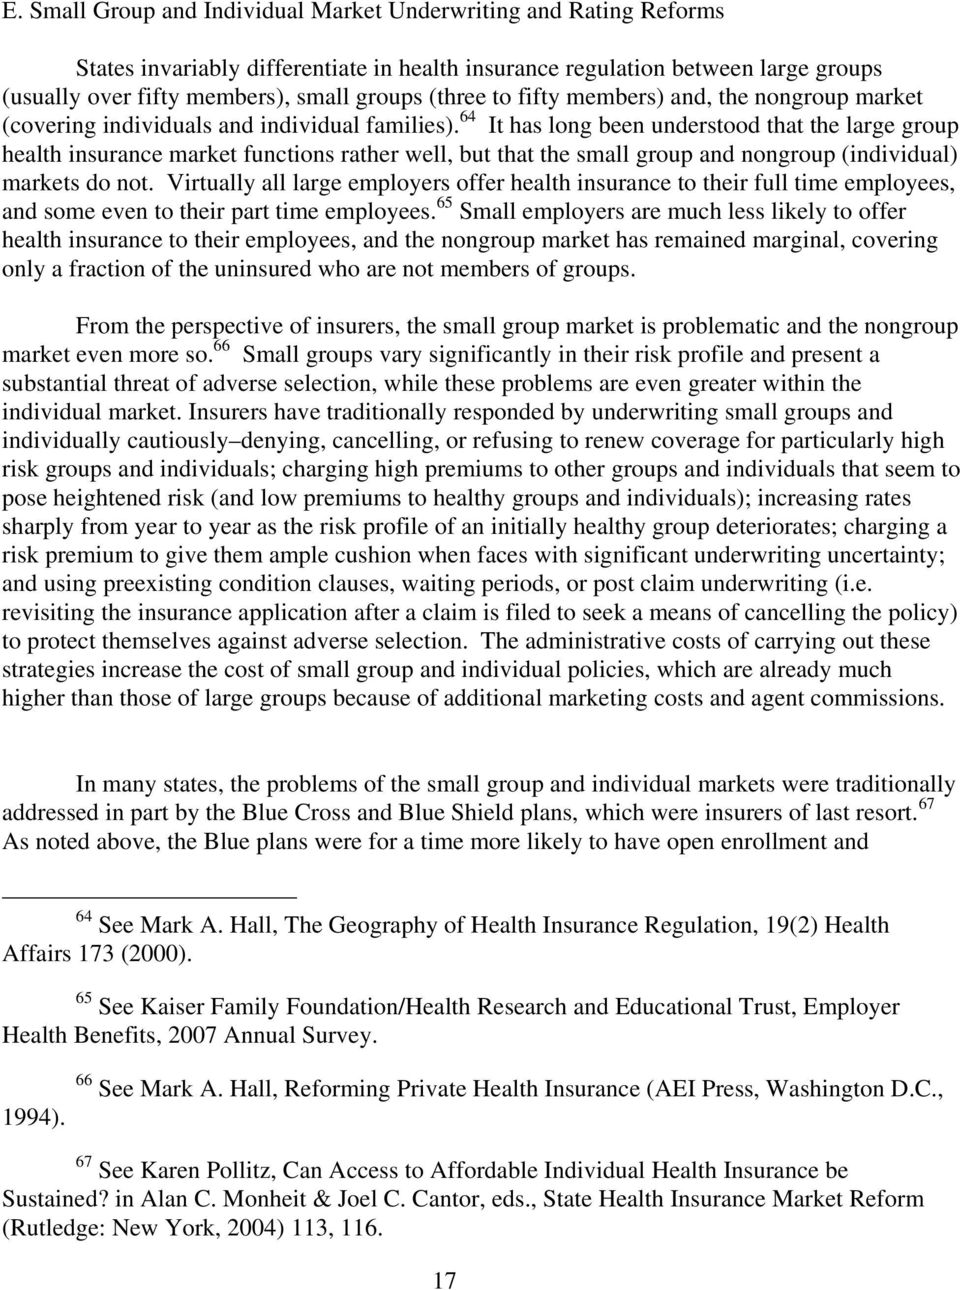 64 It has long been understood that the large group health insurance market functions rather well, but that the small group and nongroup (individual) markets do not.